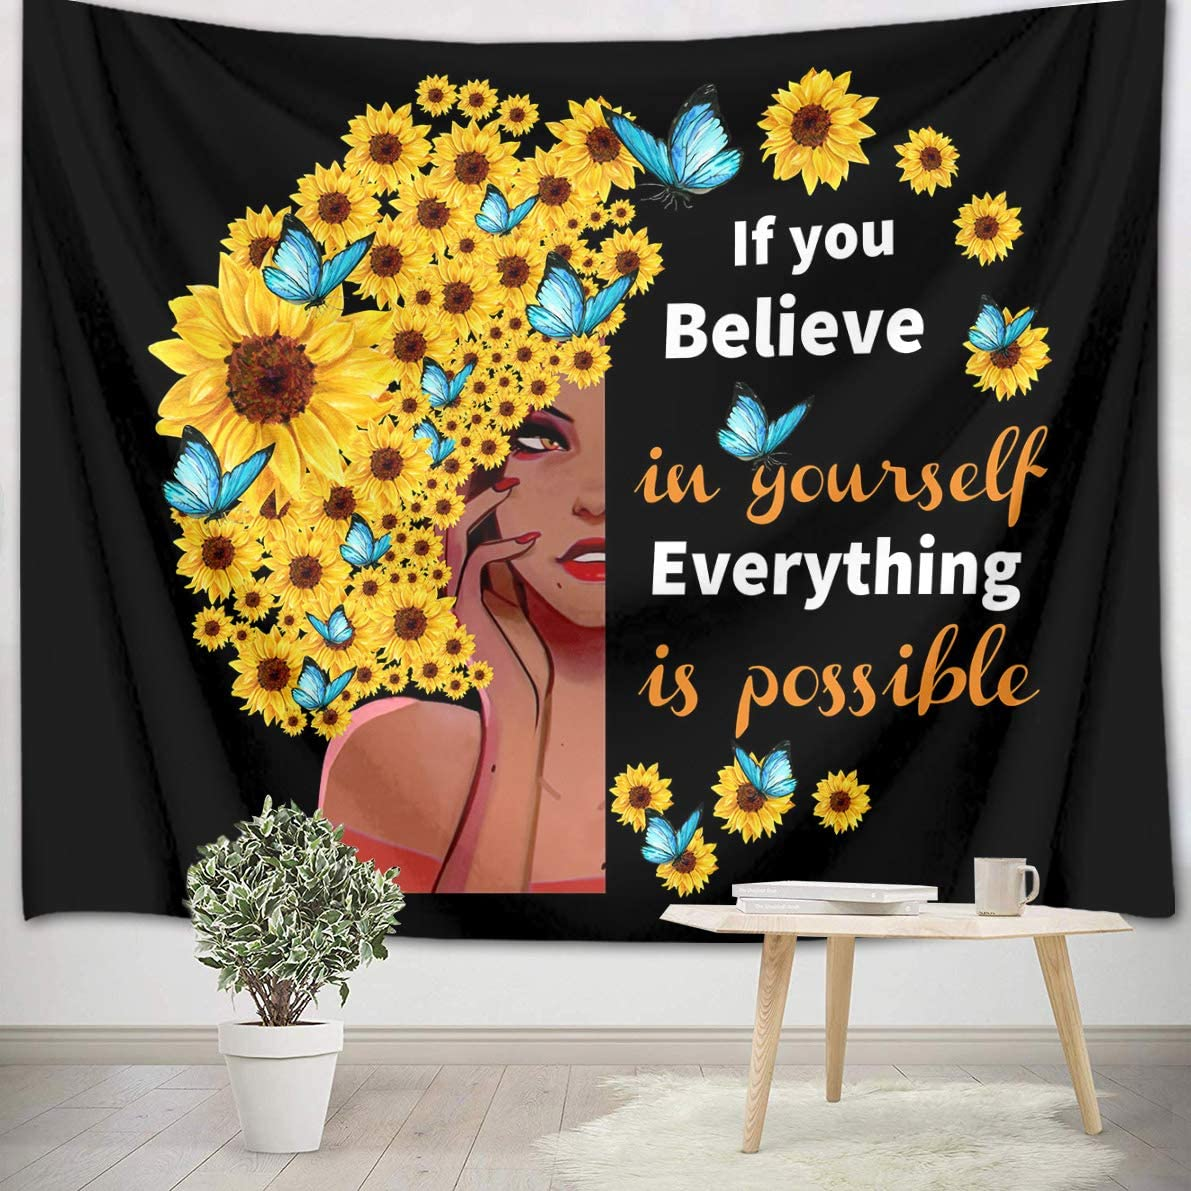 LB Black Girl Tapestry Sunflower Butterflies Afro Decoration African Women Tapestry with Inspirational Quote Funny Black Art Tapestry for Bedroom Living Dining Room Dorm Decor 93 Wx71 L